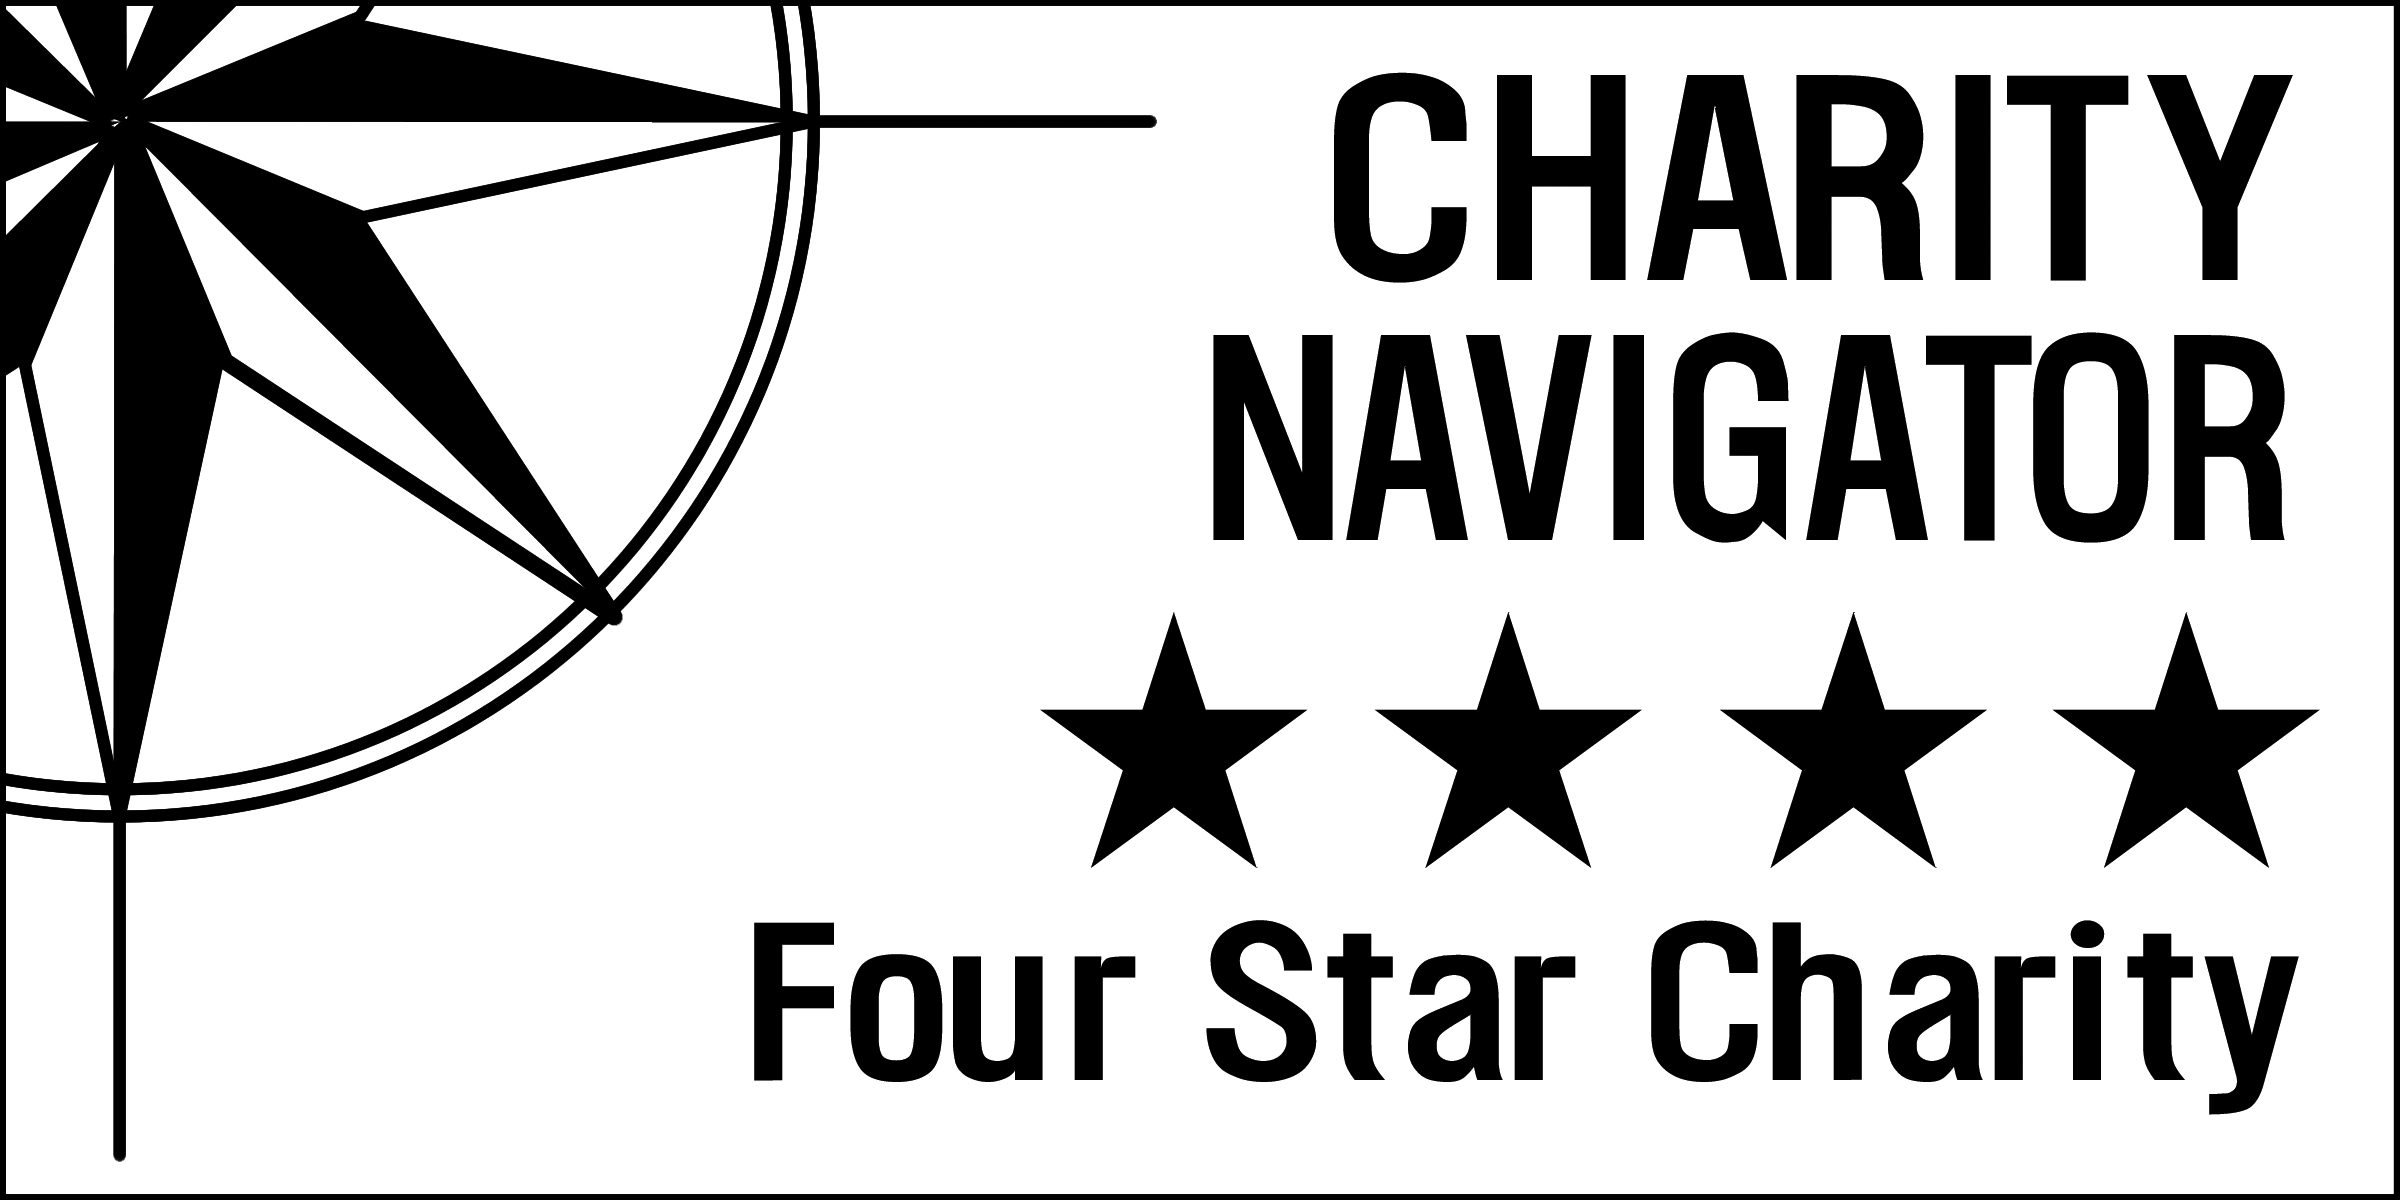 Bottom right corner of starburst icon with Charity Navigator Four Star Charity logo